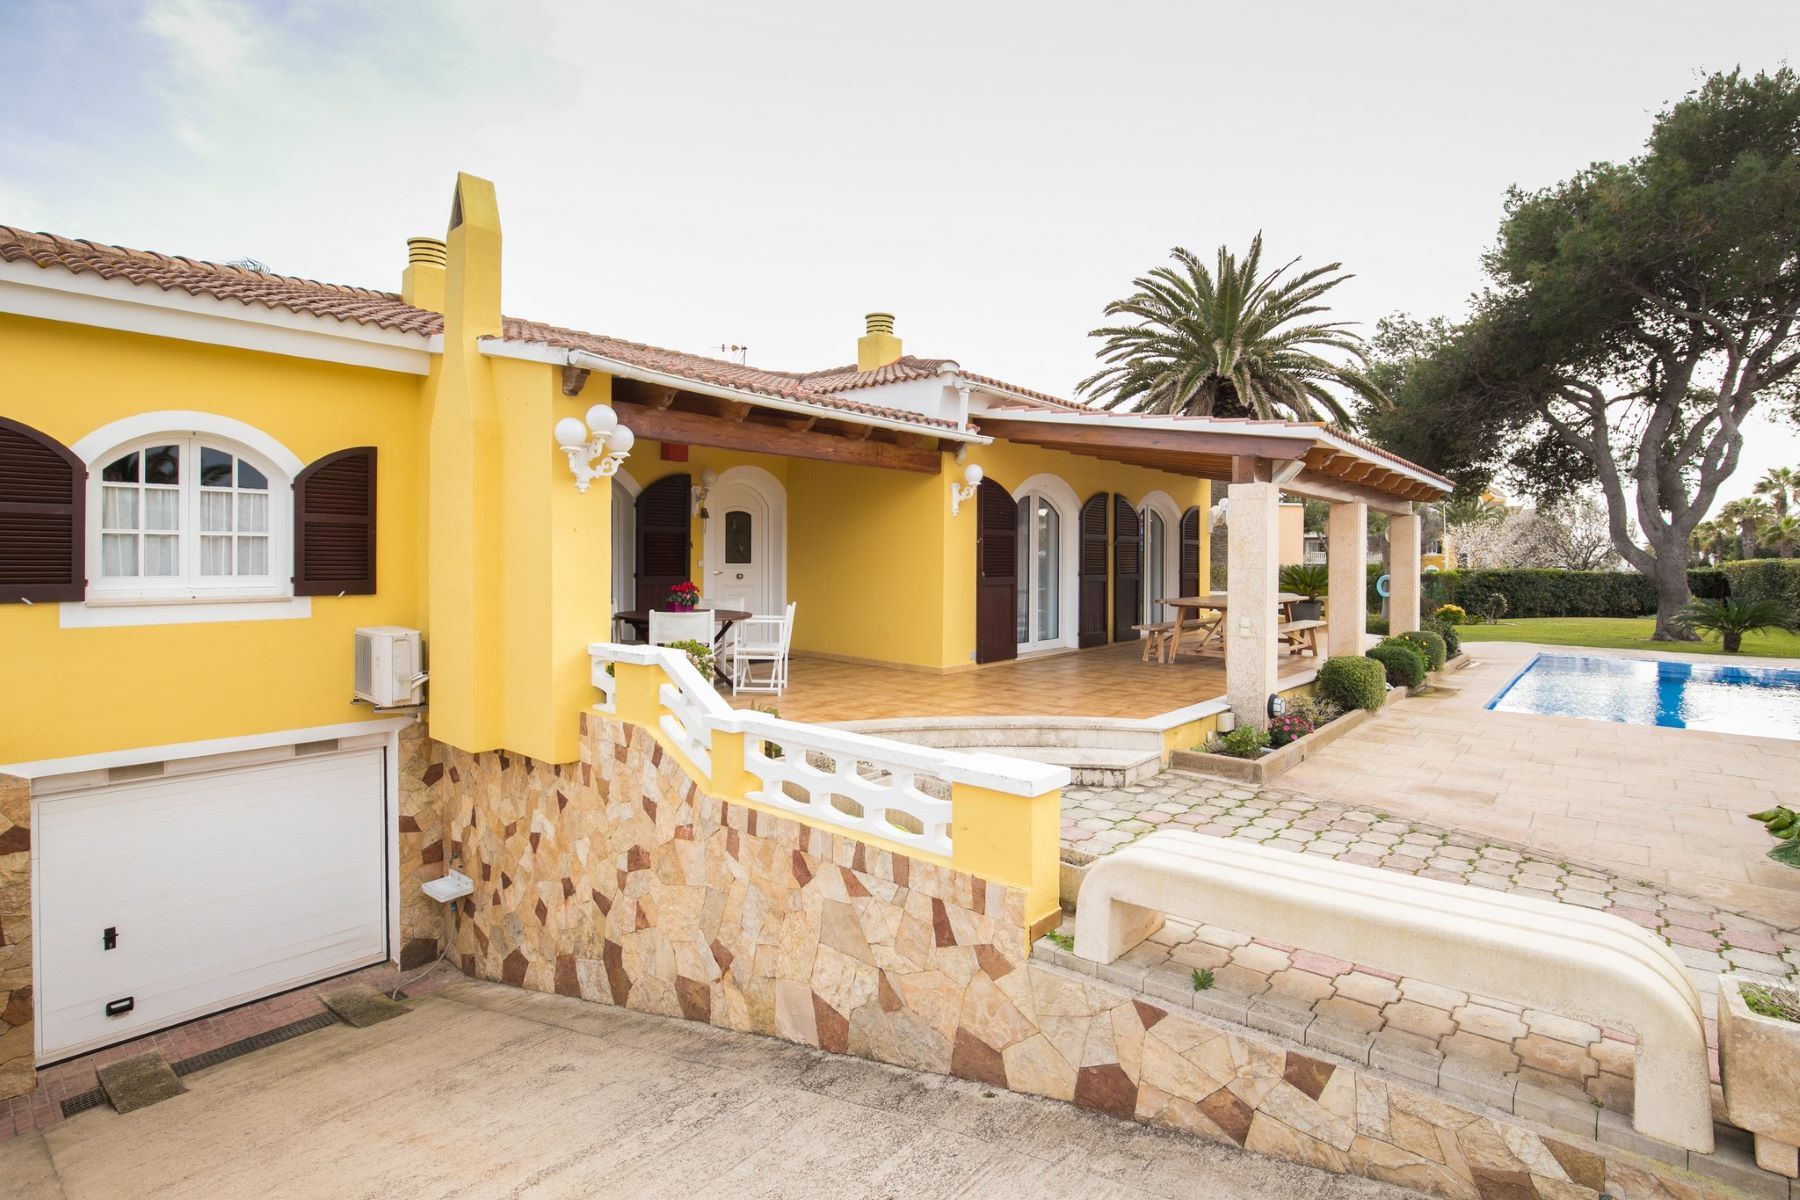 Single Family Home for Sale at Sa Caleta beach house Menorca, Menorca Spain